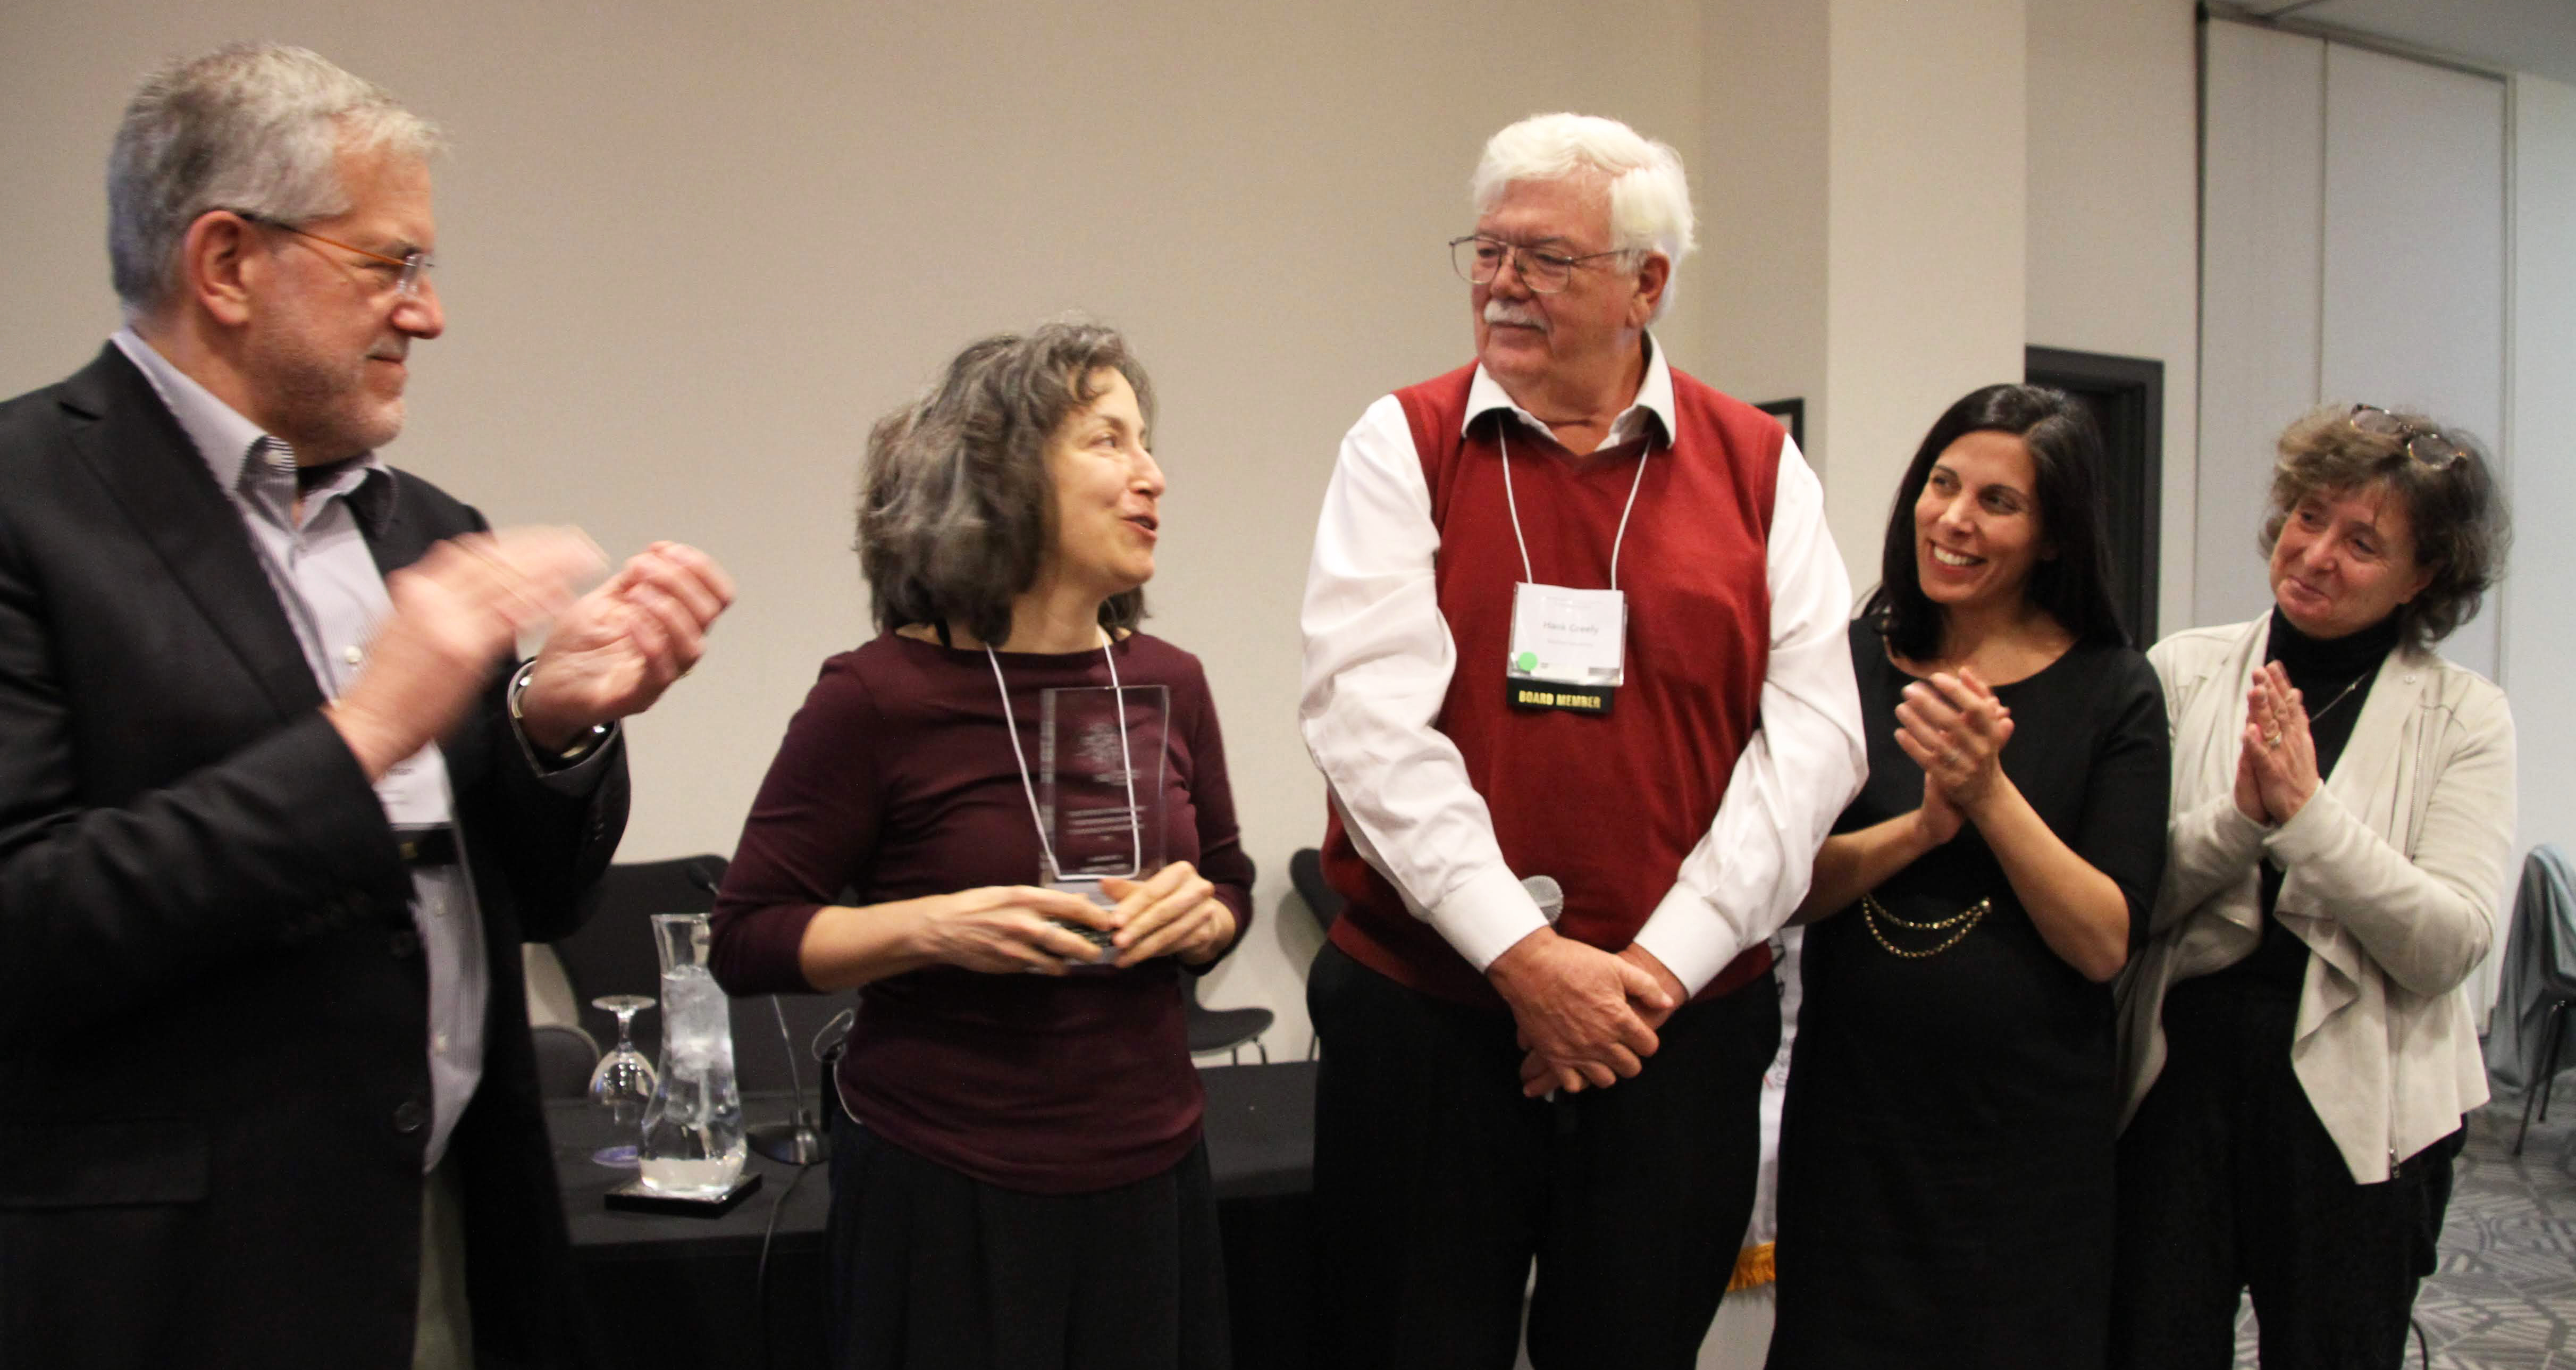 Photo of Steve Hyman, Martha Farah accepting an award plaque, Hank Greely, Nita Farahany and Judy Illes